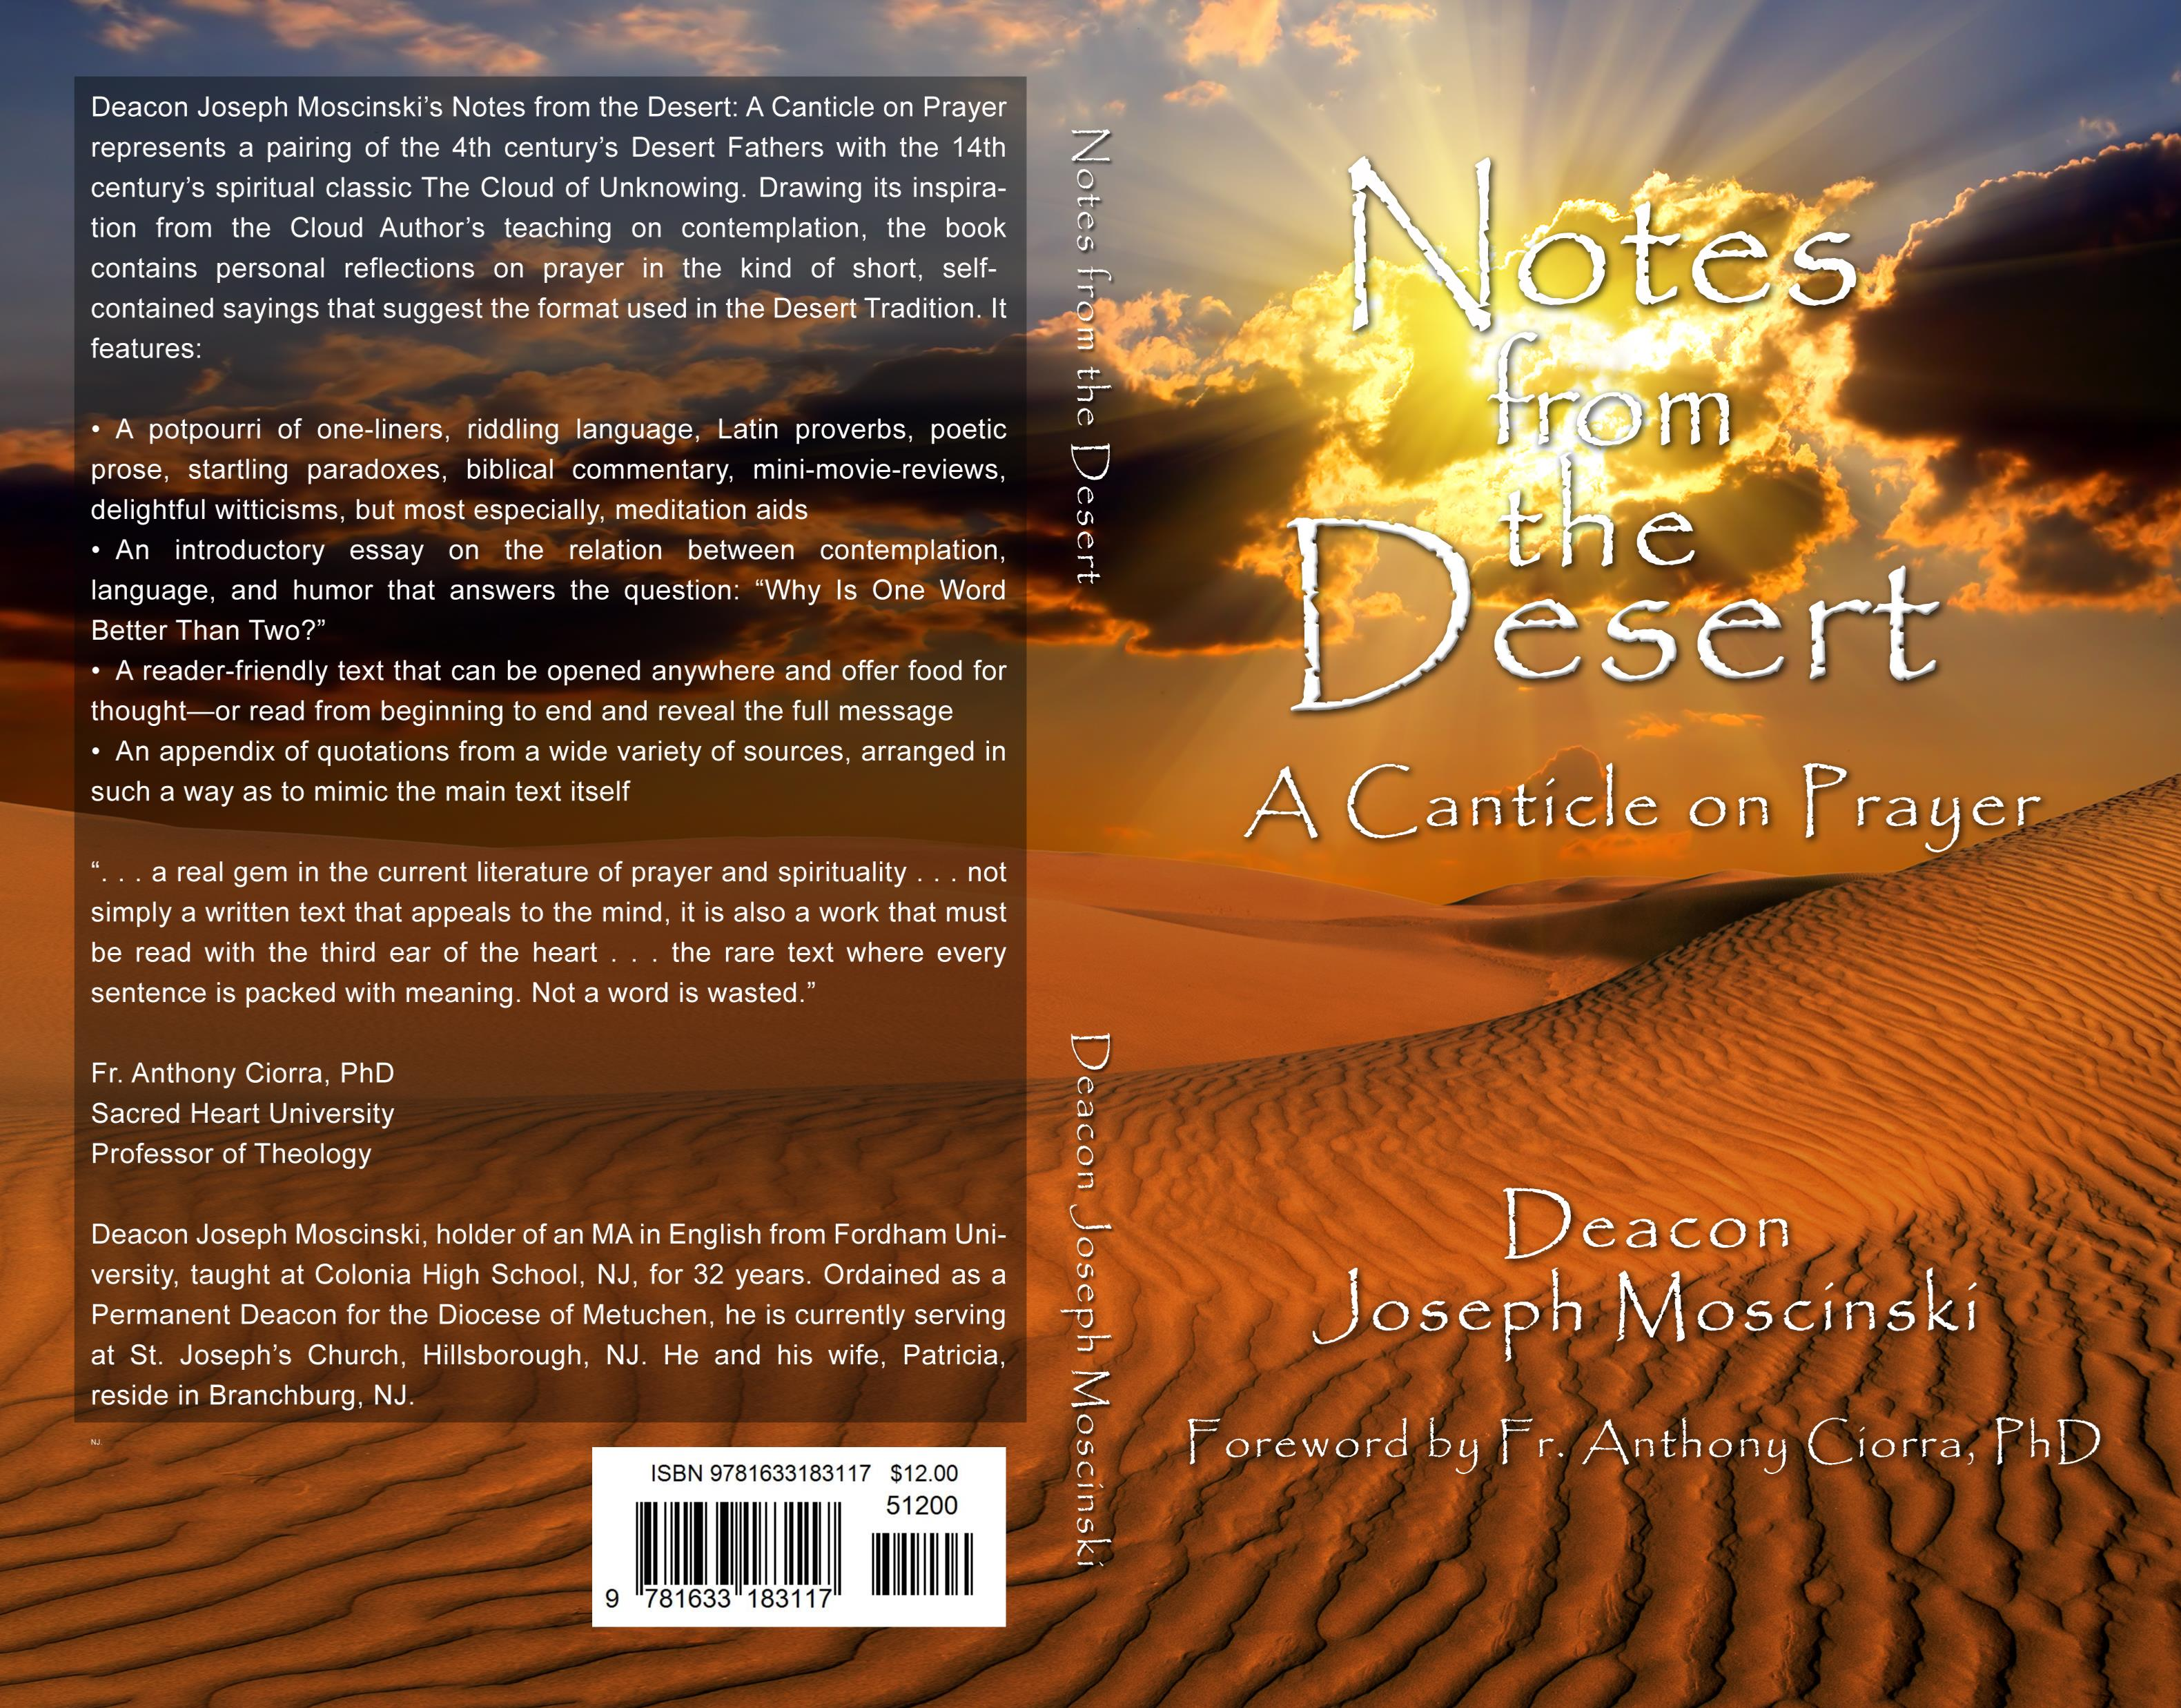 notes from the desert a canticle on prayer by joseph moscinski notes from the desert a canticle on prayer cover image